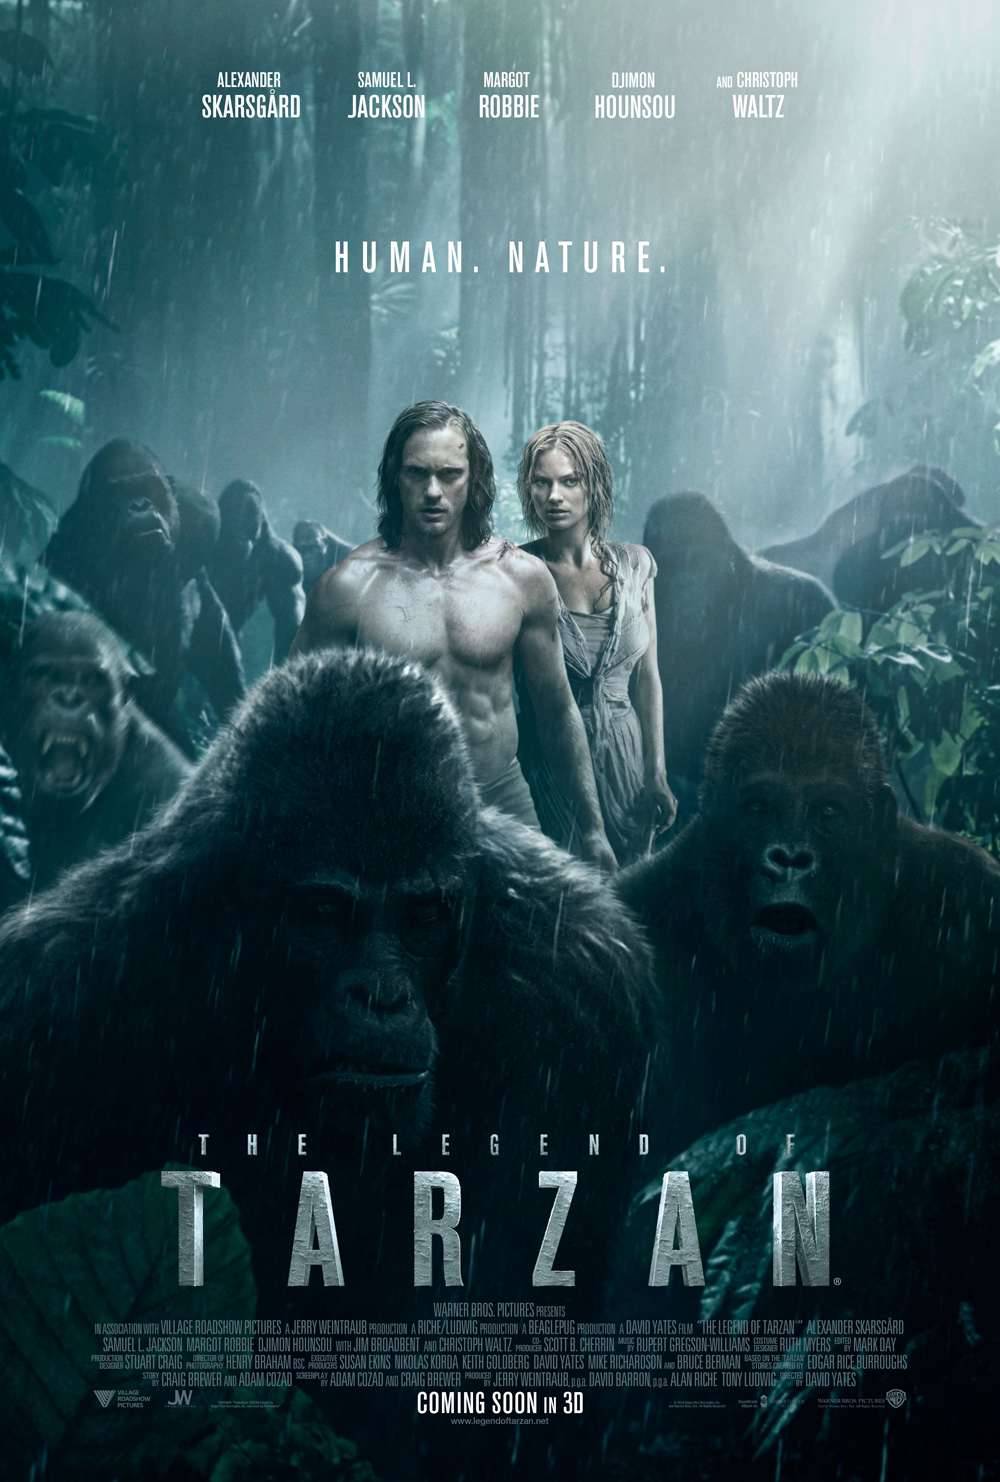 The Legend of Tarzan Gets a New Poster